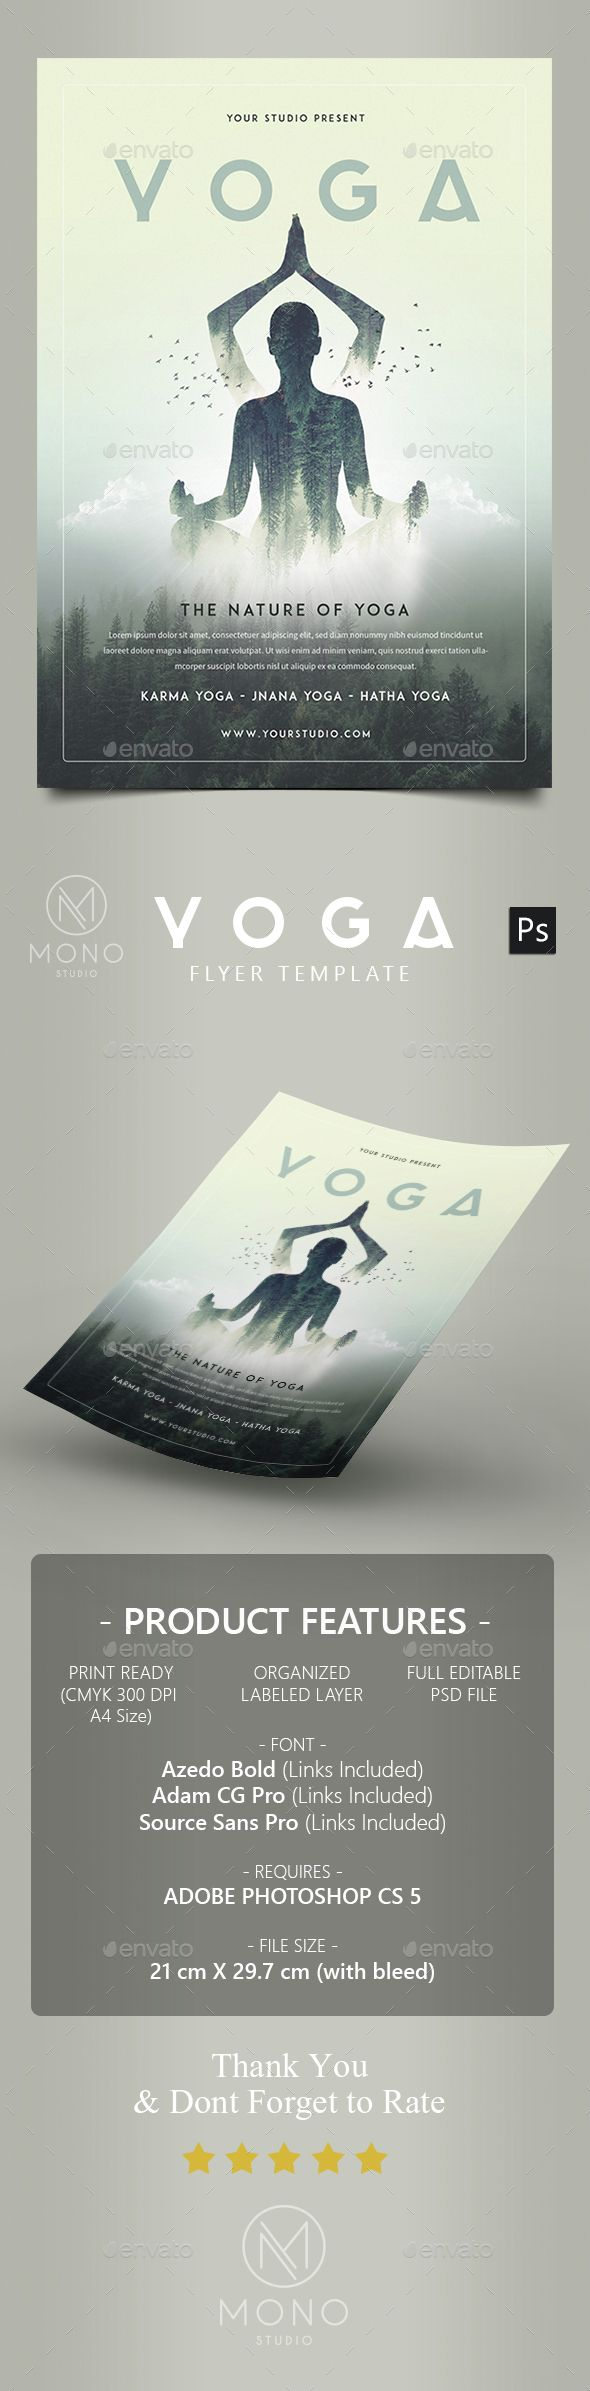 Yoga Flyer | Flyer template, Yoga and Template